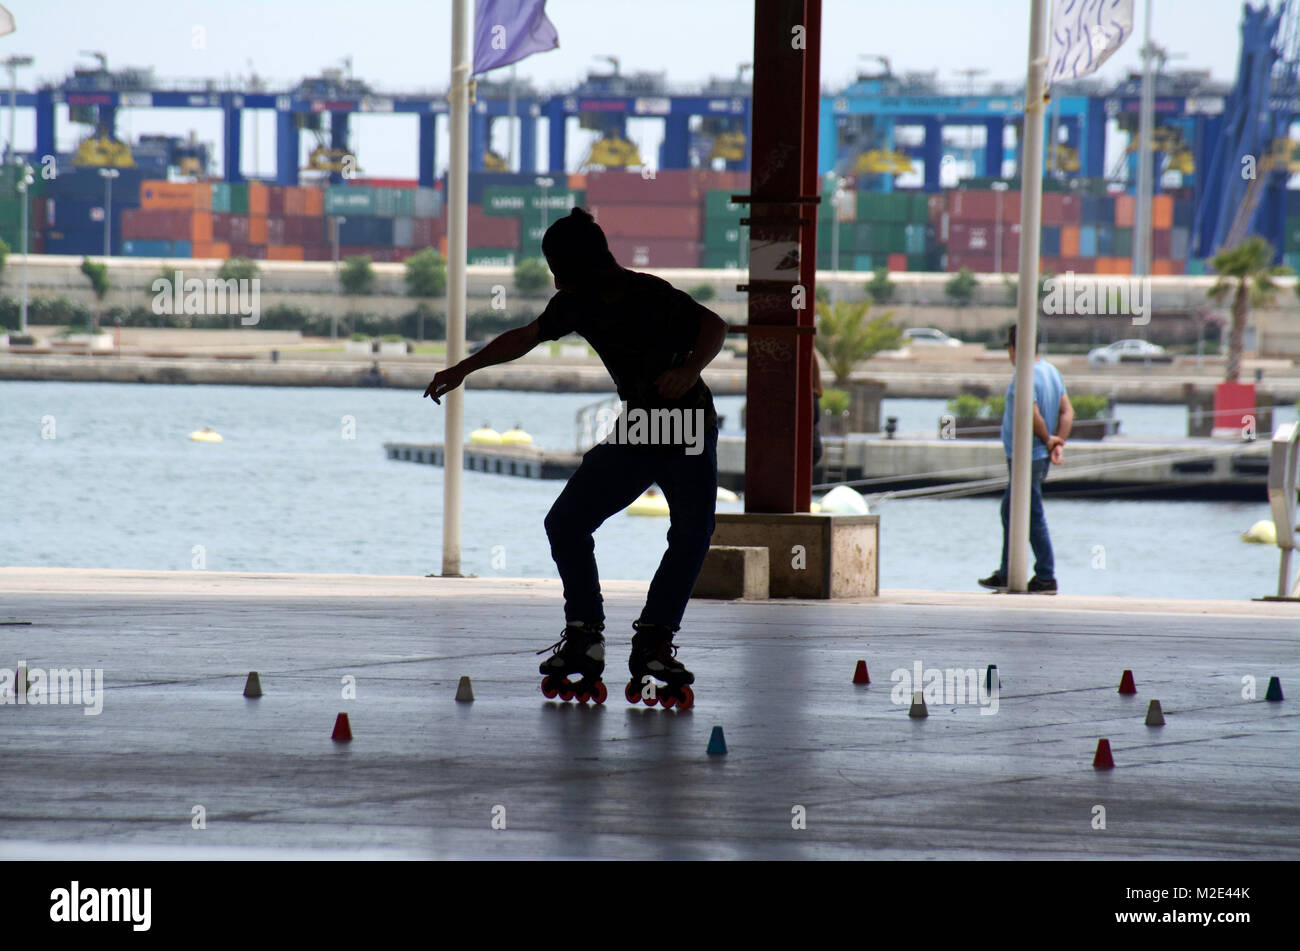 Skater Silhouettes at skate park in Valencia, Spain. Young & energetic rollerbladers enjoy the vigorous & - Stock Image